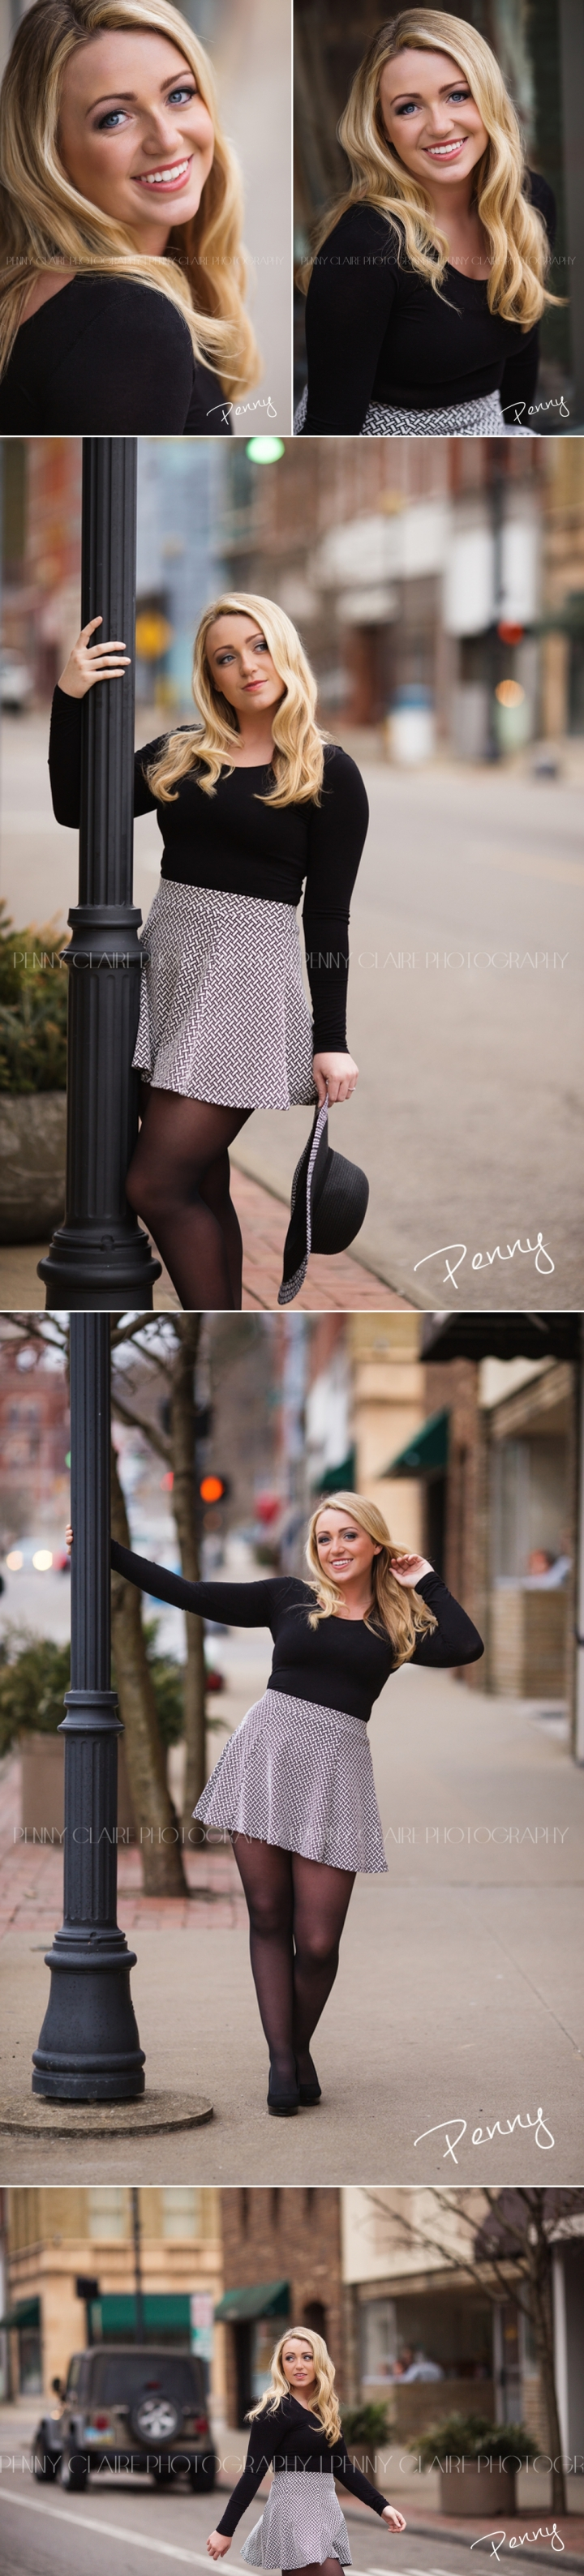 Penny Caire Blog 6